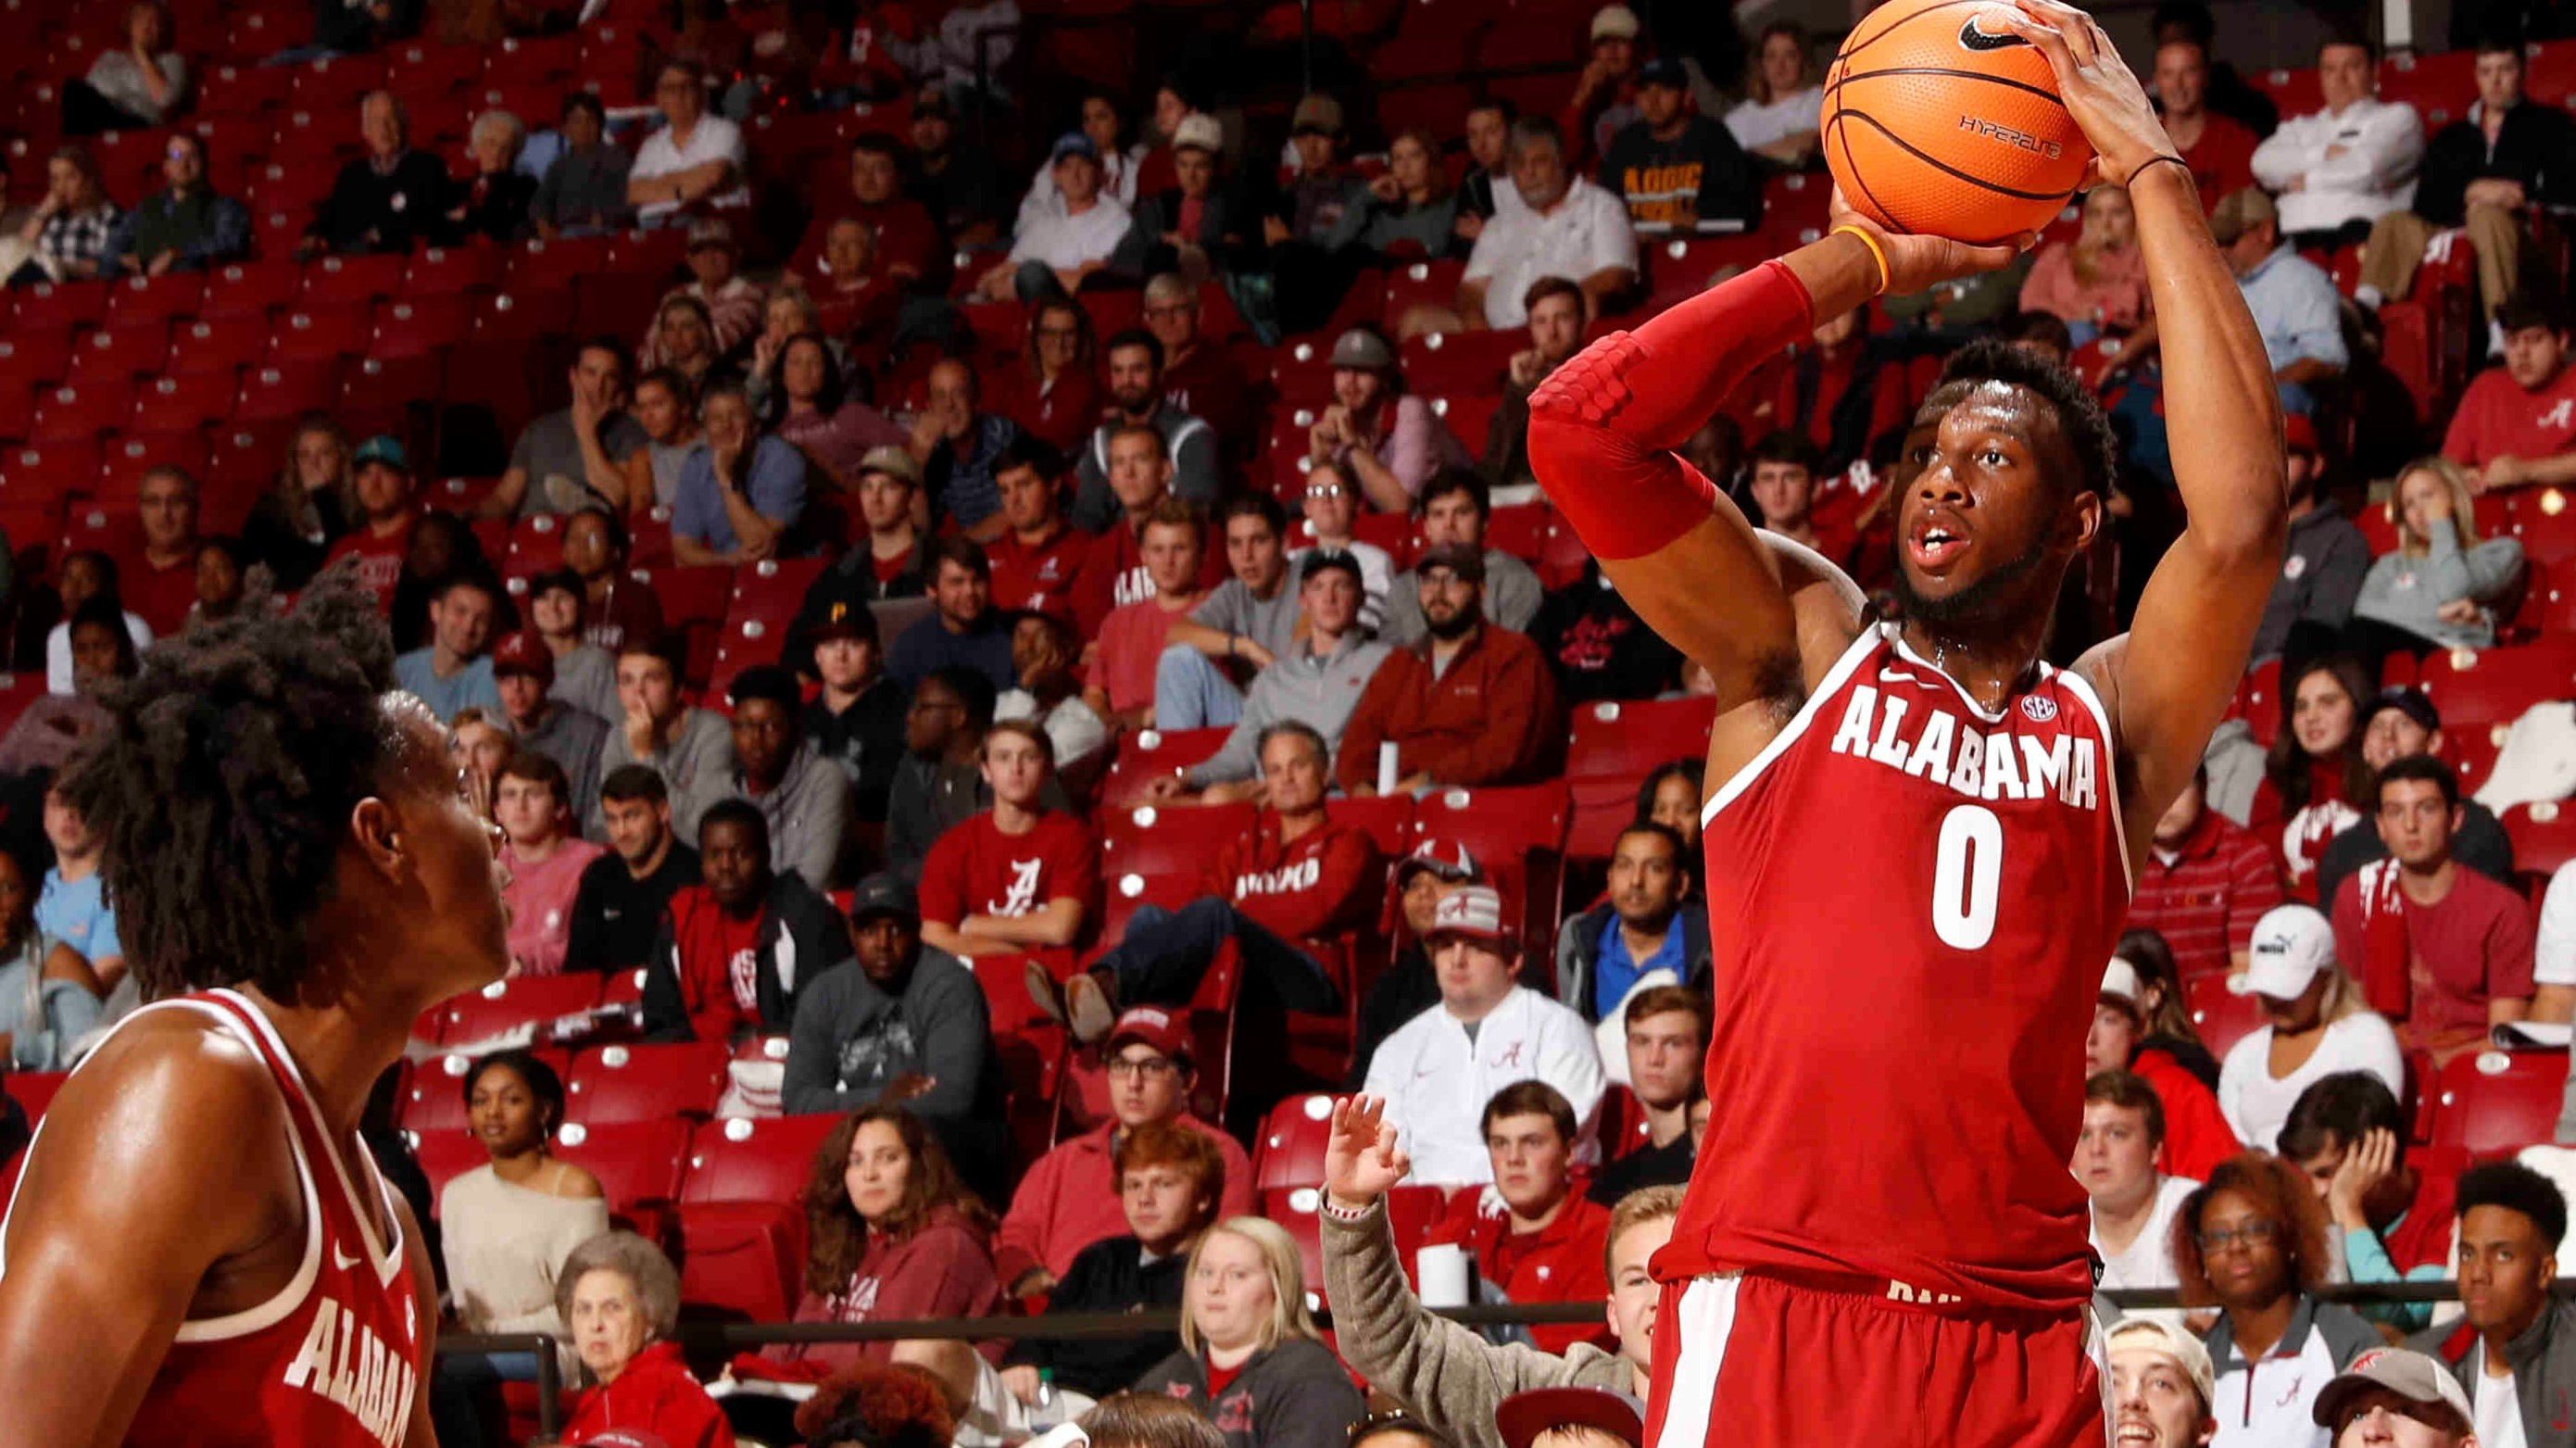 College Football Tv Schedule 2017 >> Alabama Men's Basketball Hosts UAH in Exhibition Contest Monday Night - Alabama Athletics